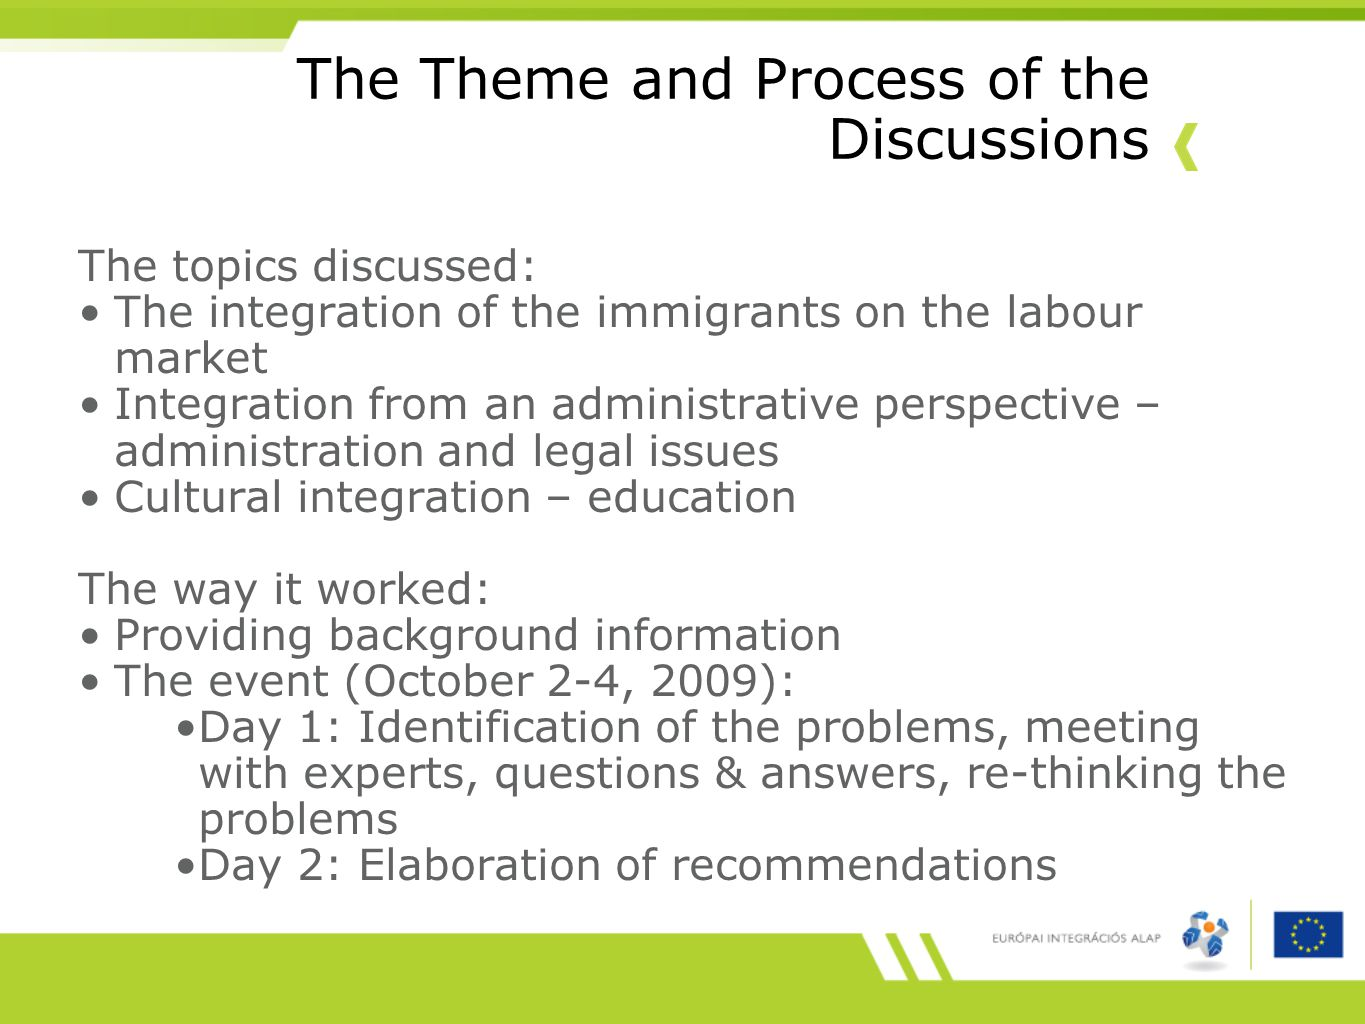 The Theme and Process of the Discussions The topics discussed: The integration of the immigrants on the labour market Integration from an administrative perspective – administration and legal issues Cultural integration – education The way it worked: Providing background information The event (October 2-4, 2009): Day 1: Identification of the problems, meeting with experts, questions & answers, re-thinking the problems Day 2: Elaboration of recommendations